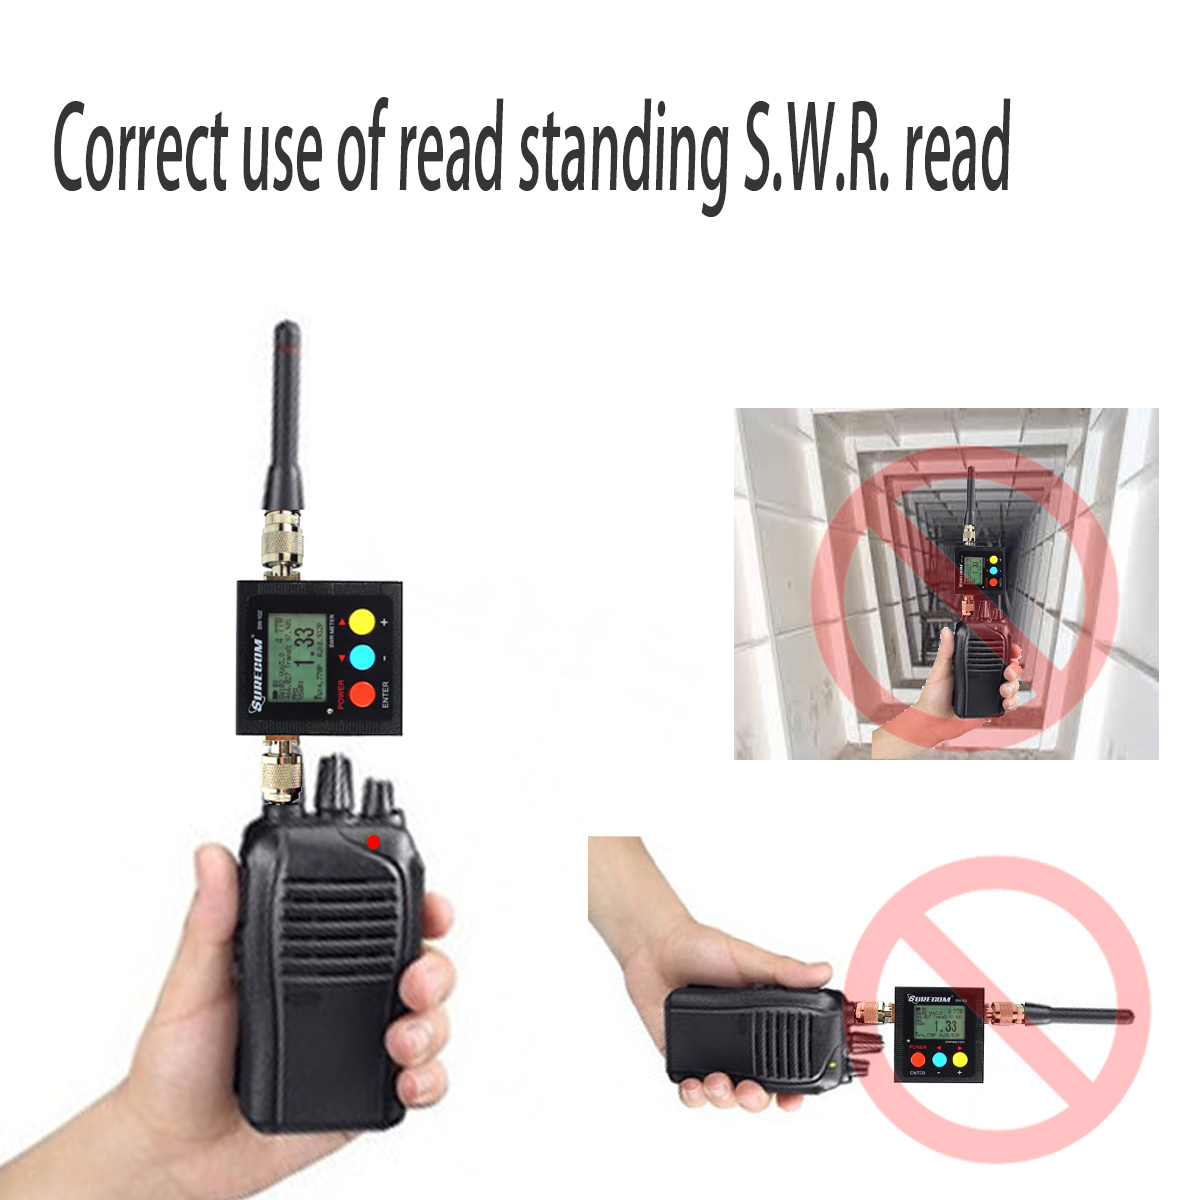 sw-102-how-to-swR